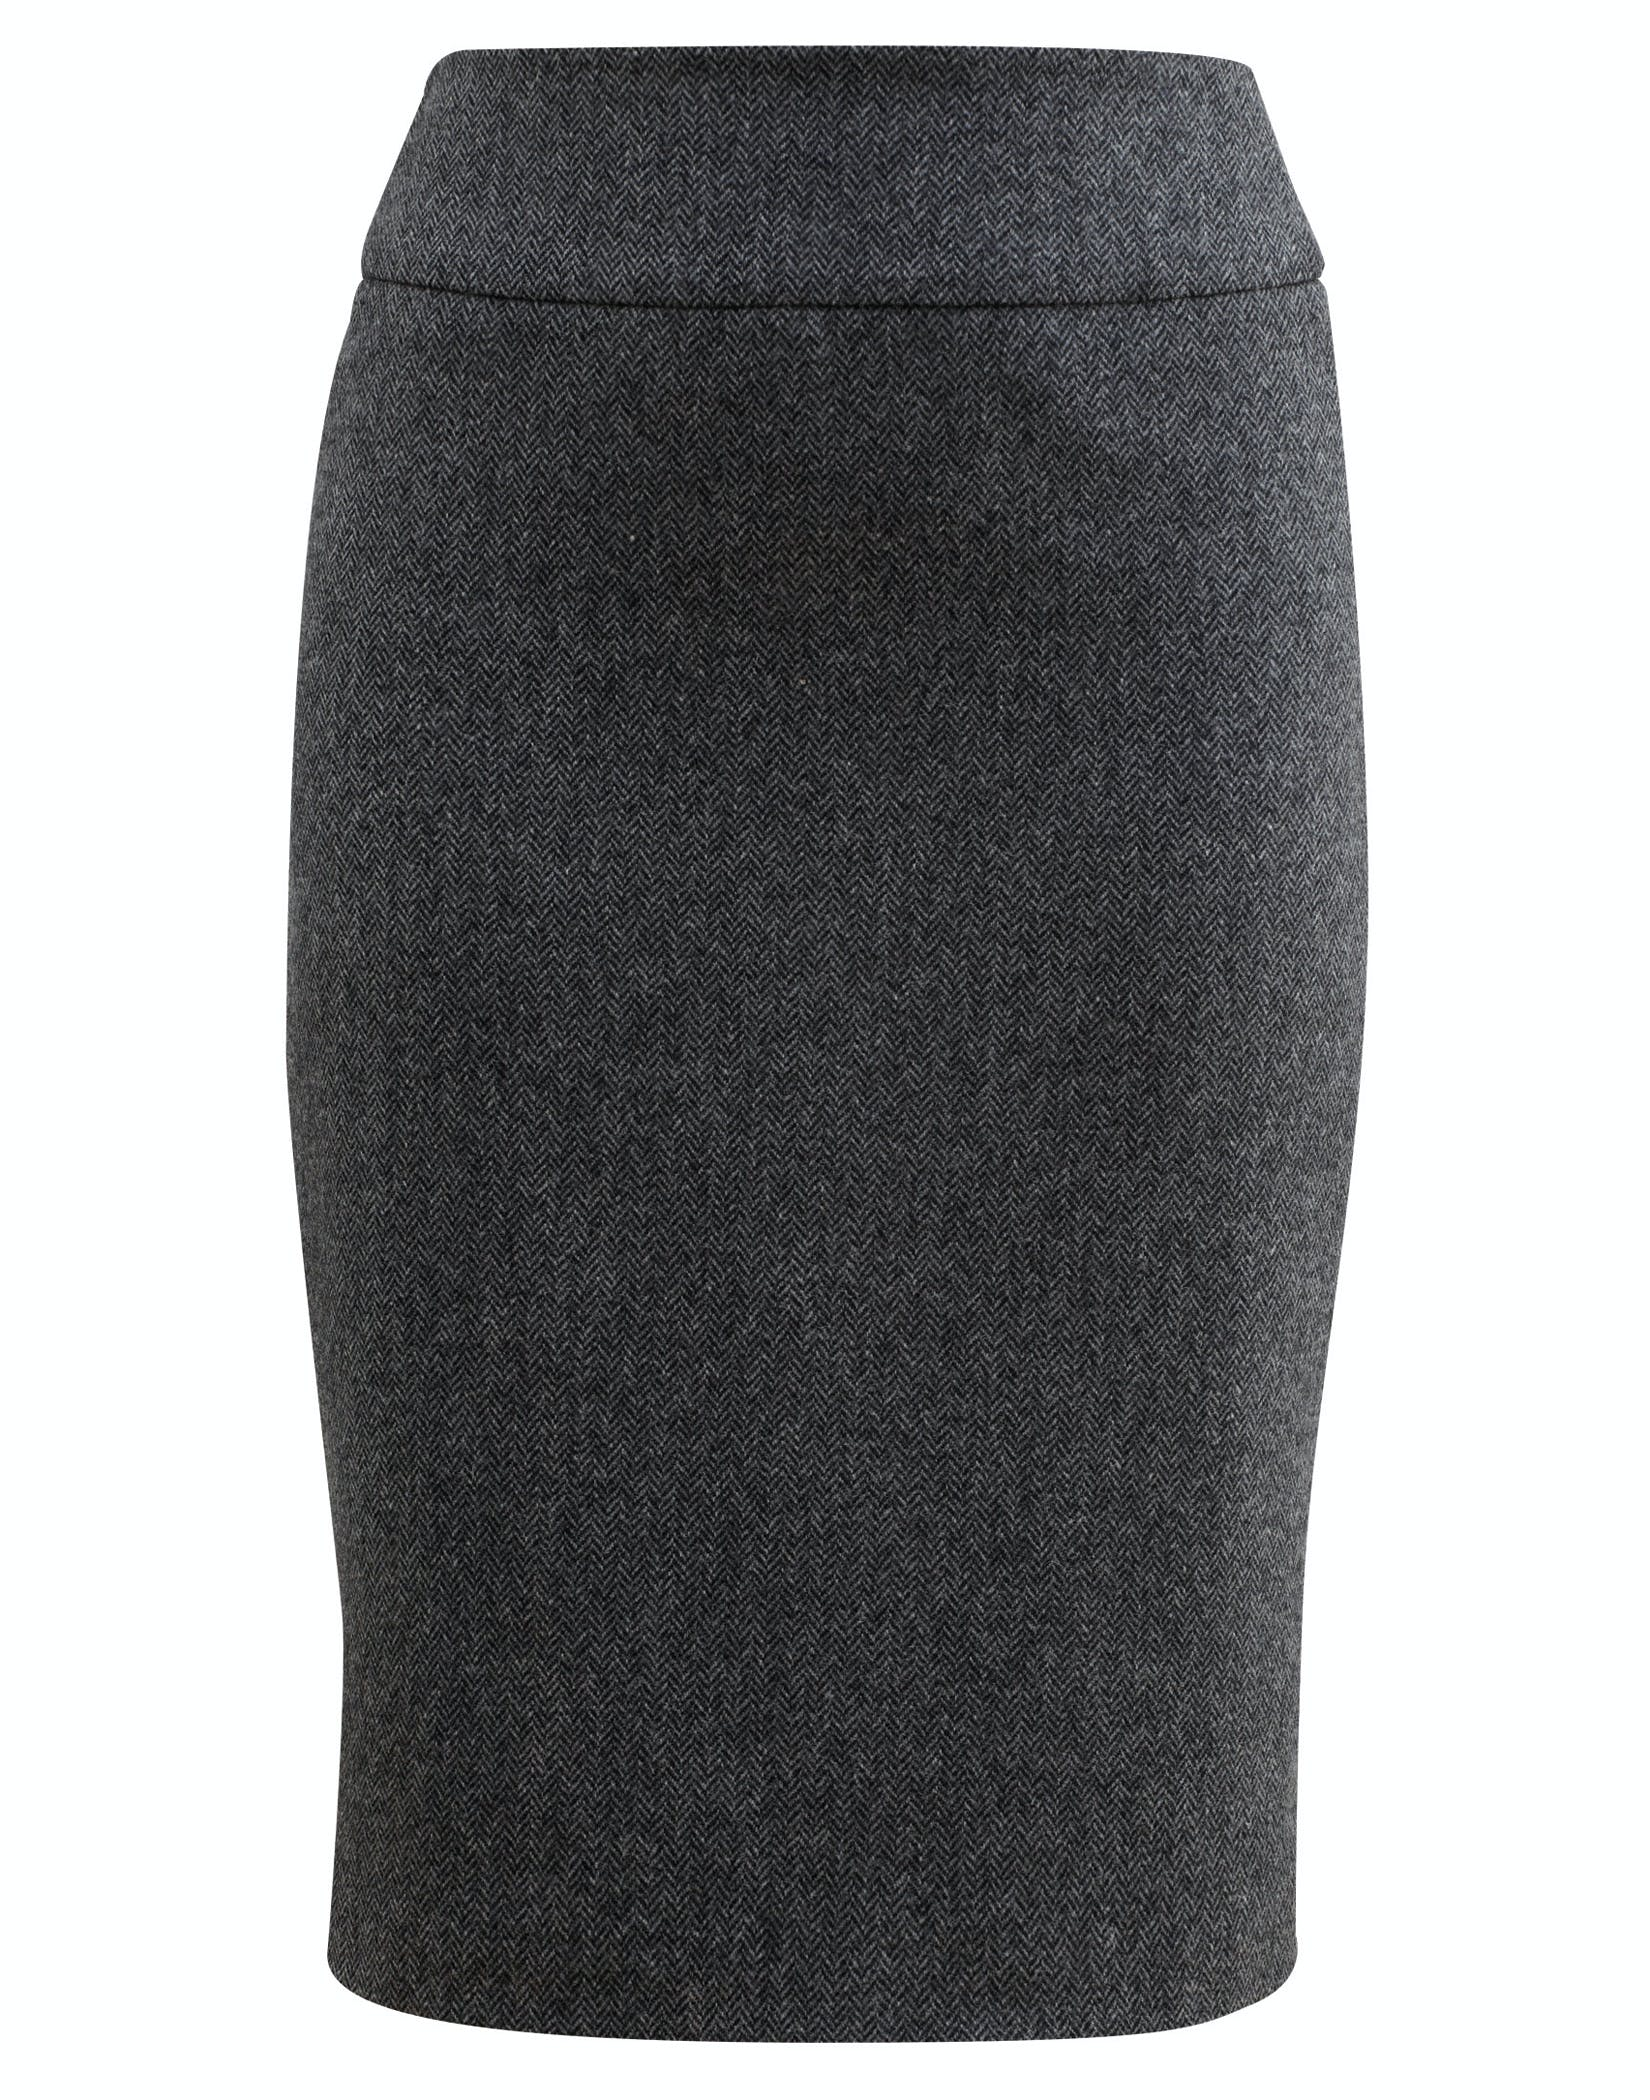 Dales Tweed Pencil Skirt